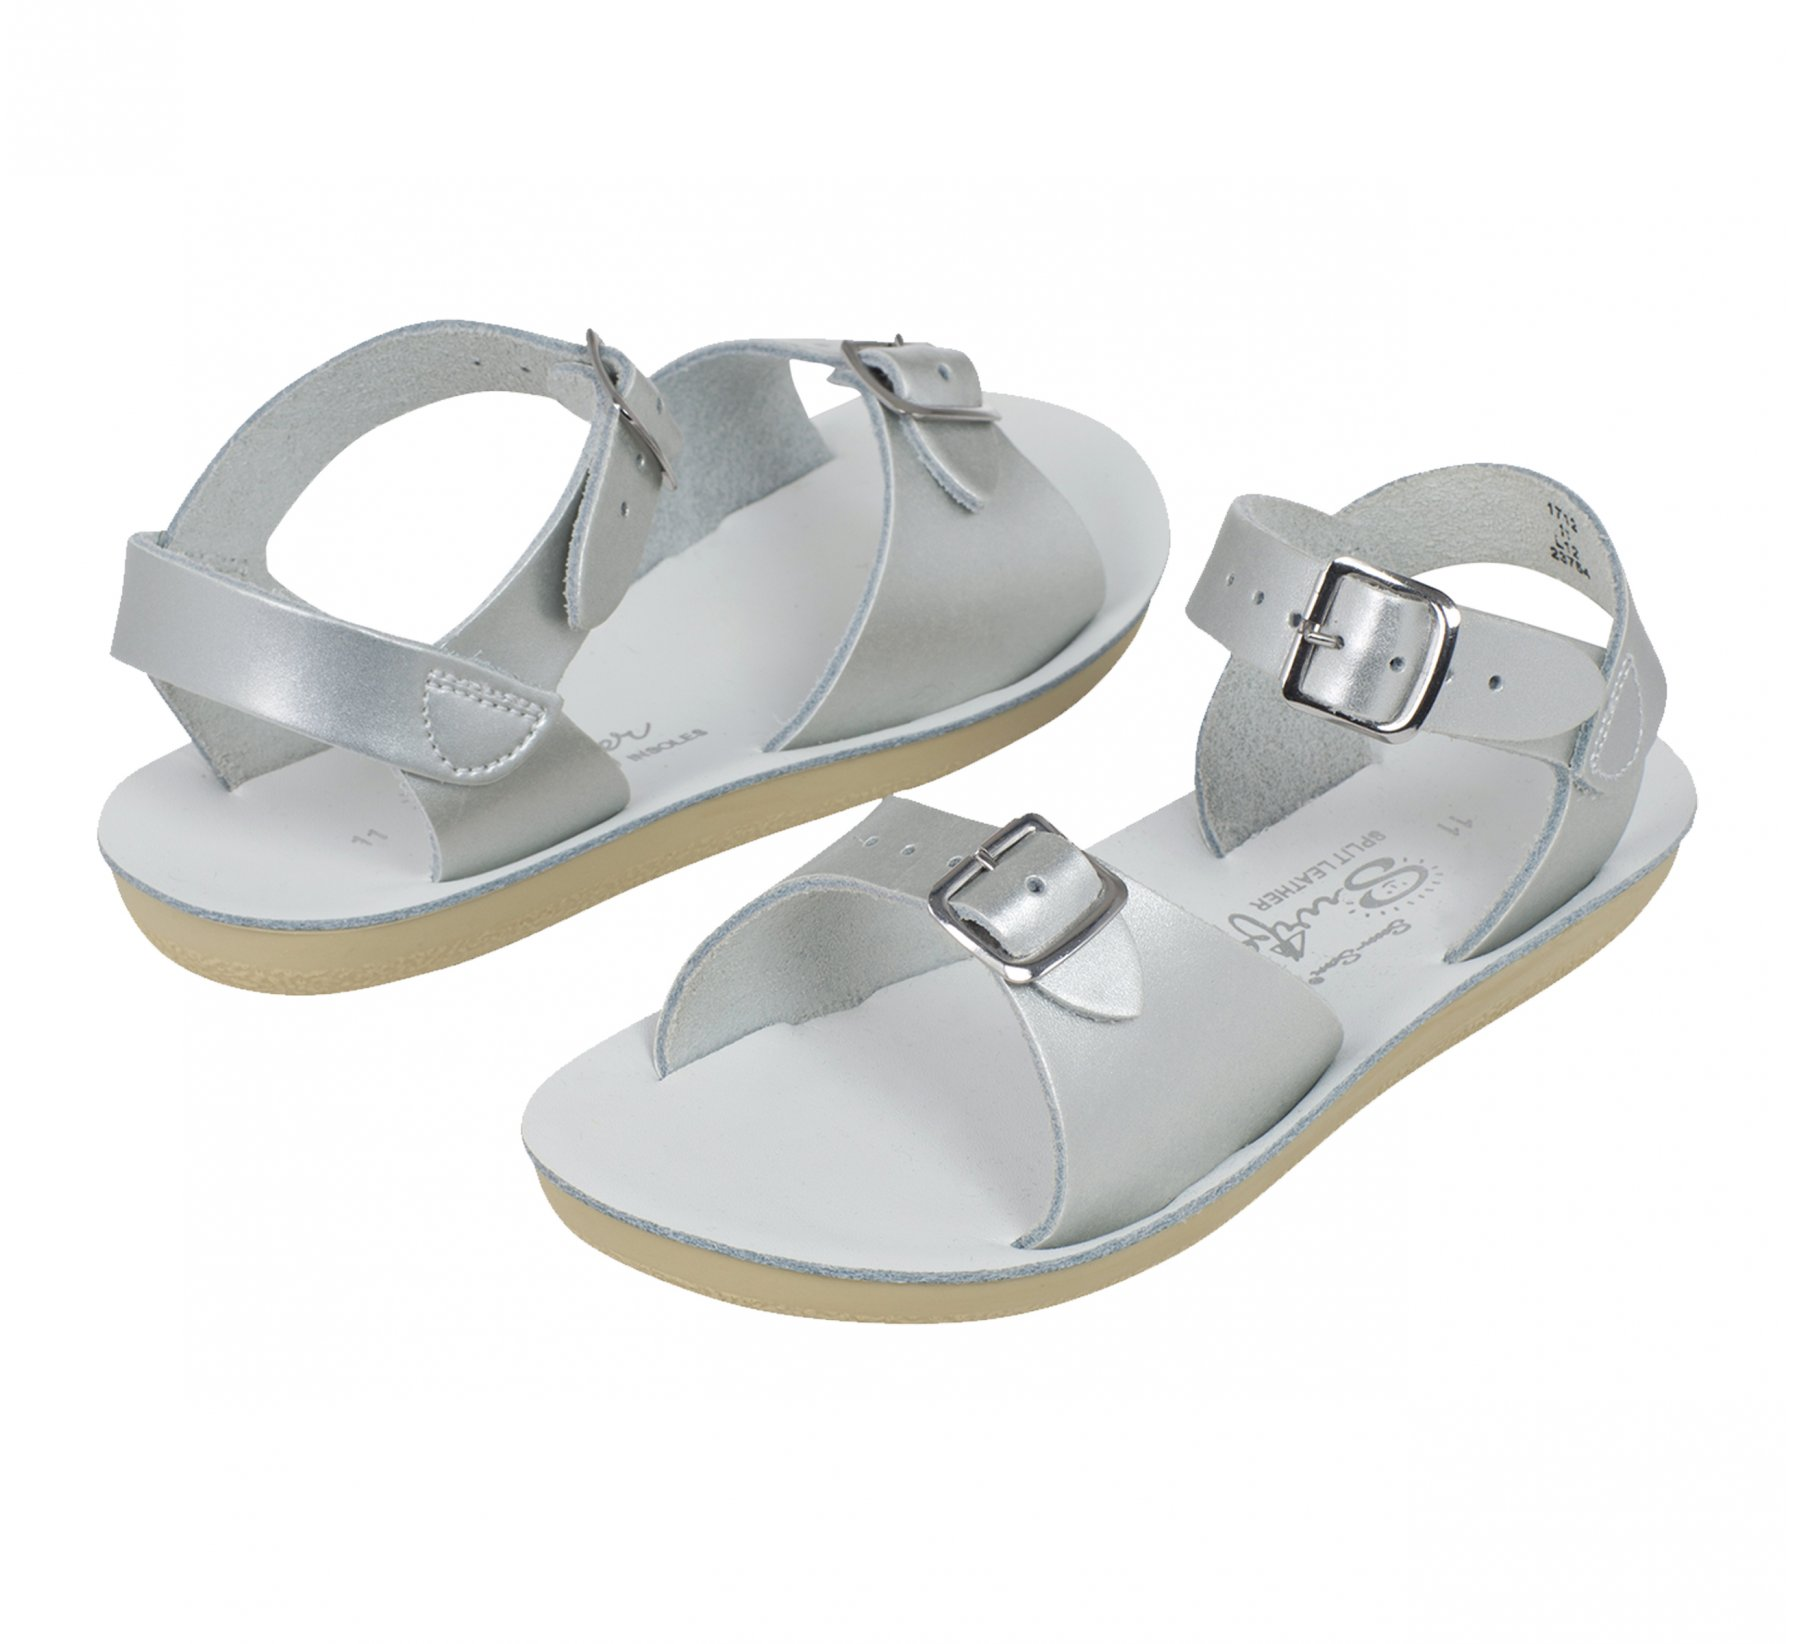 Surfer Argenté - Salt Water Sandals